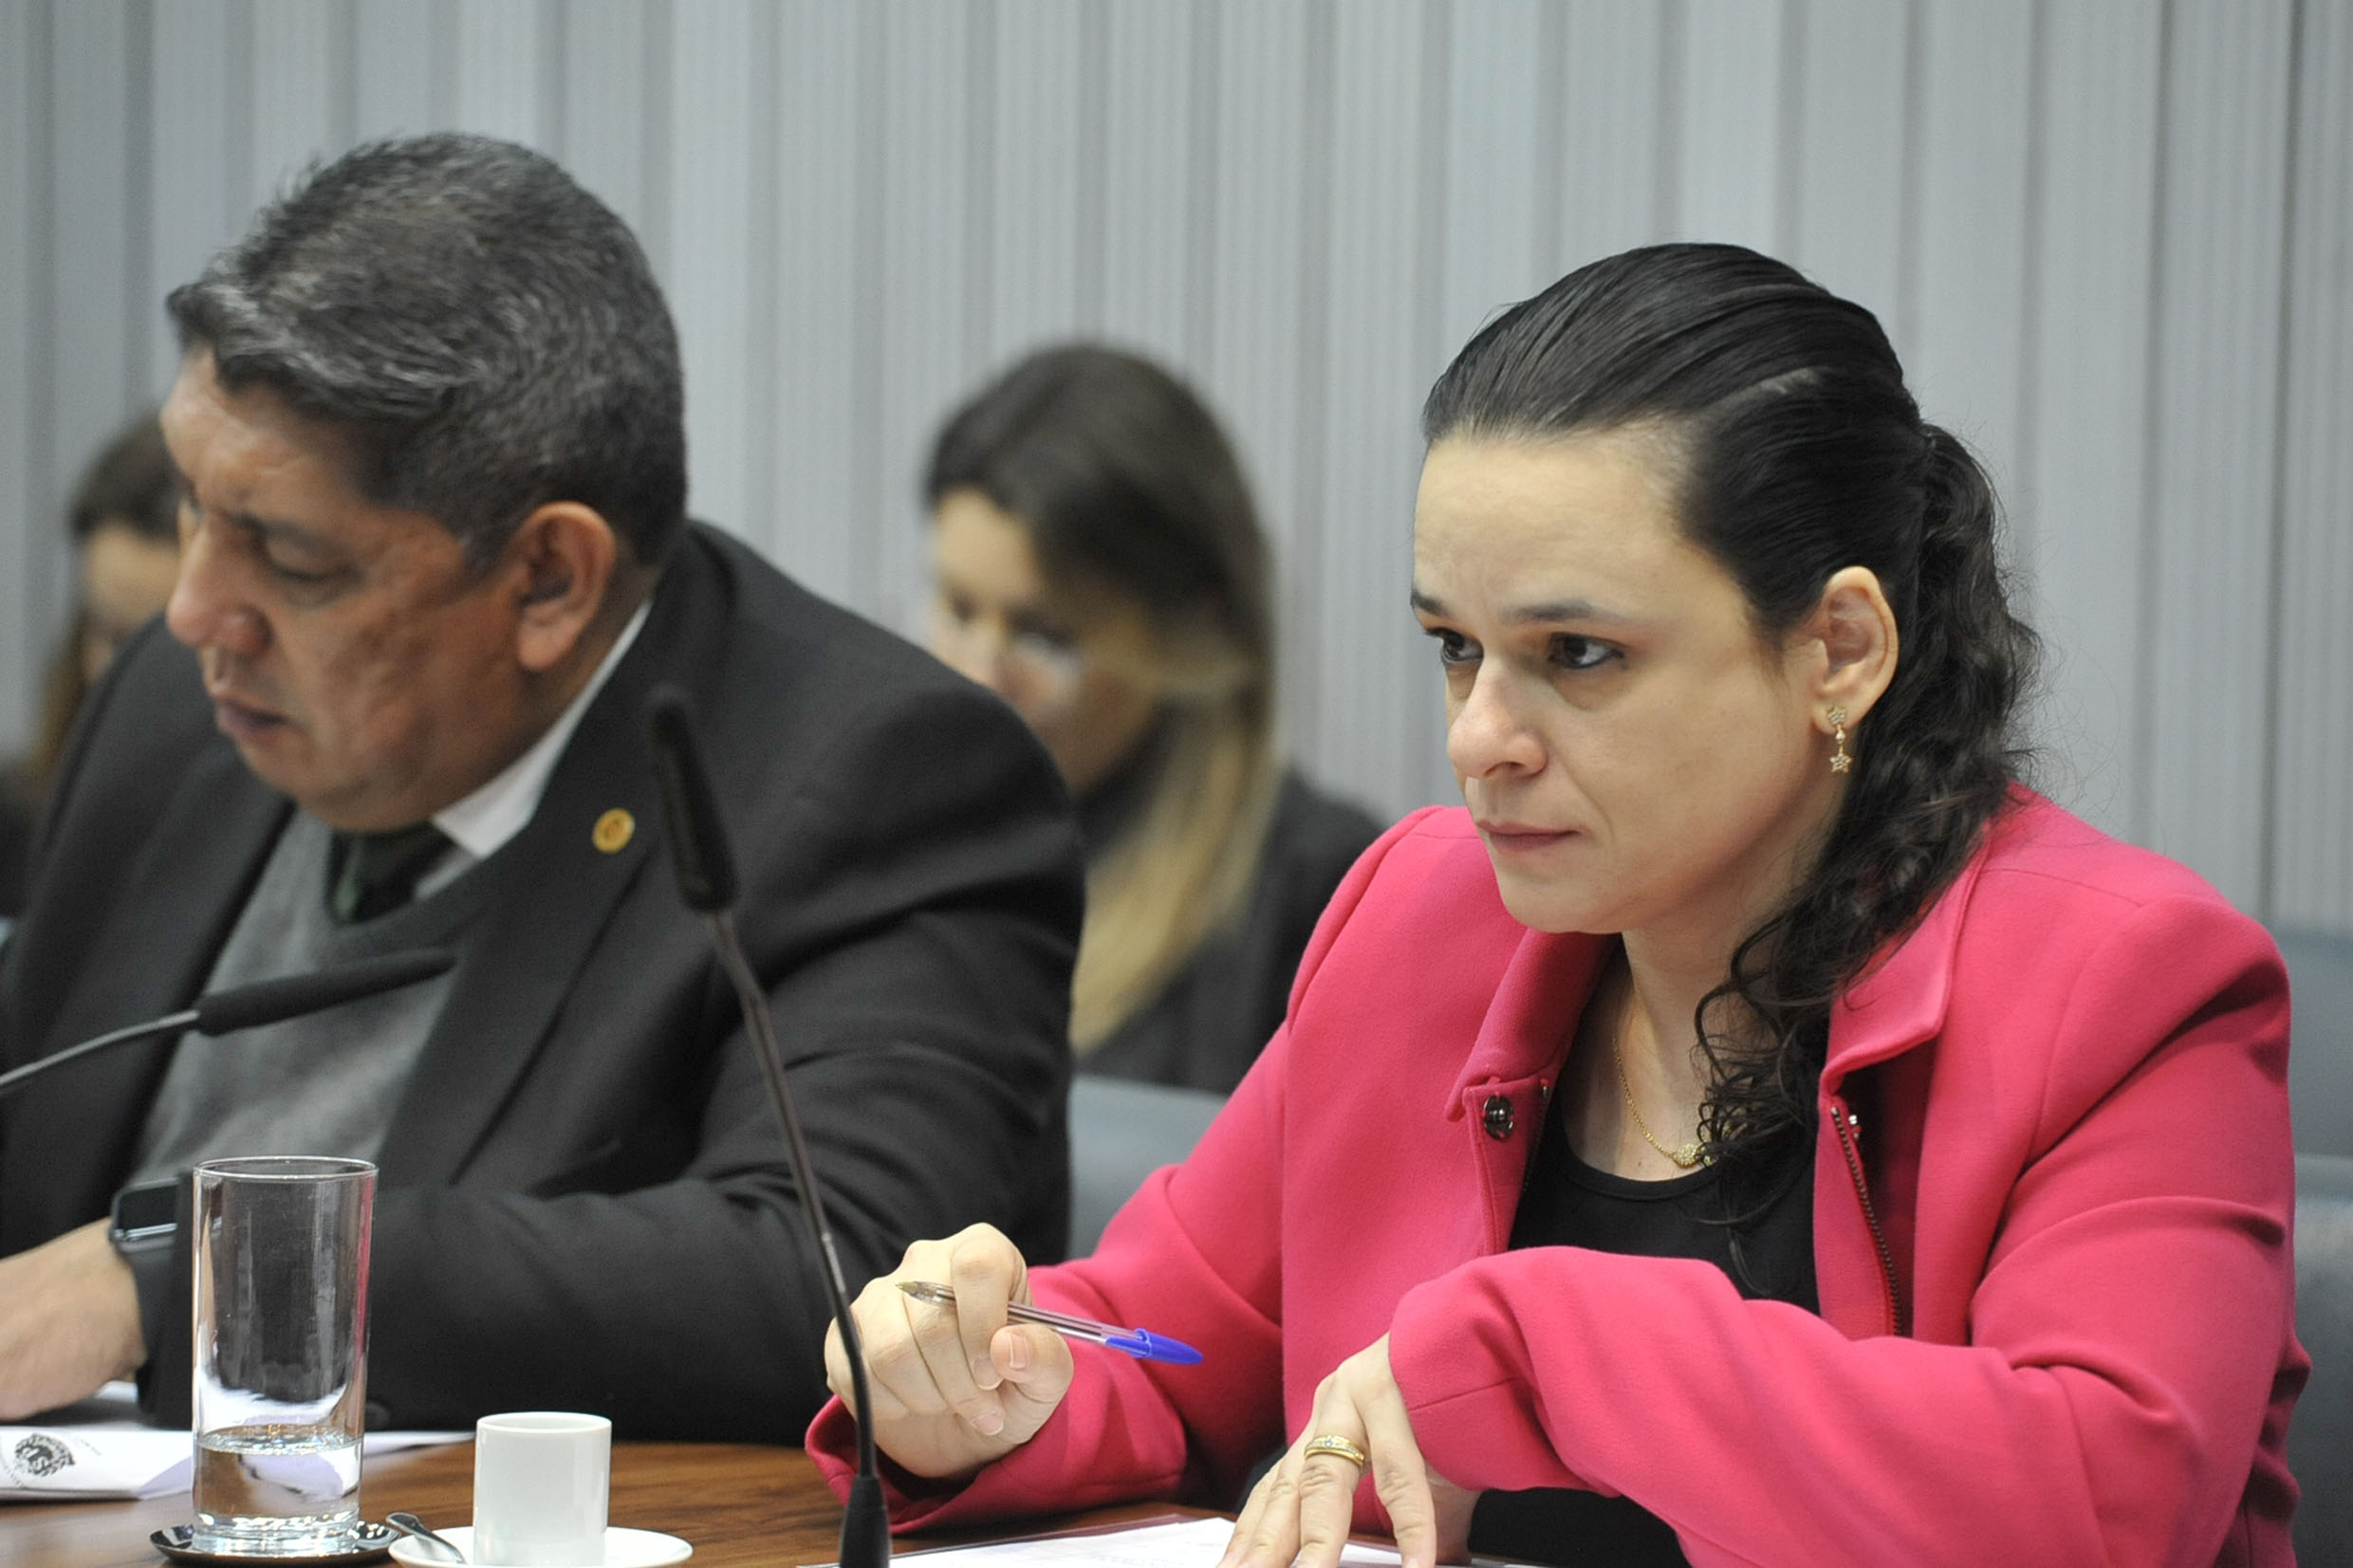 Adalberto Freitas e Janaina Paschoal<a style='float:right' href='https://www3.al.sp.gov.br/repositorio/noticia/N-08-2019/fg238014.jpg' target=_blank><img src='/_img/material-file-download-white.png' width='14px' alt='Clique para baixar a imagem'></a>